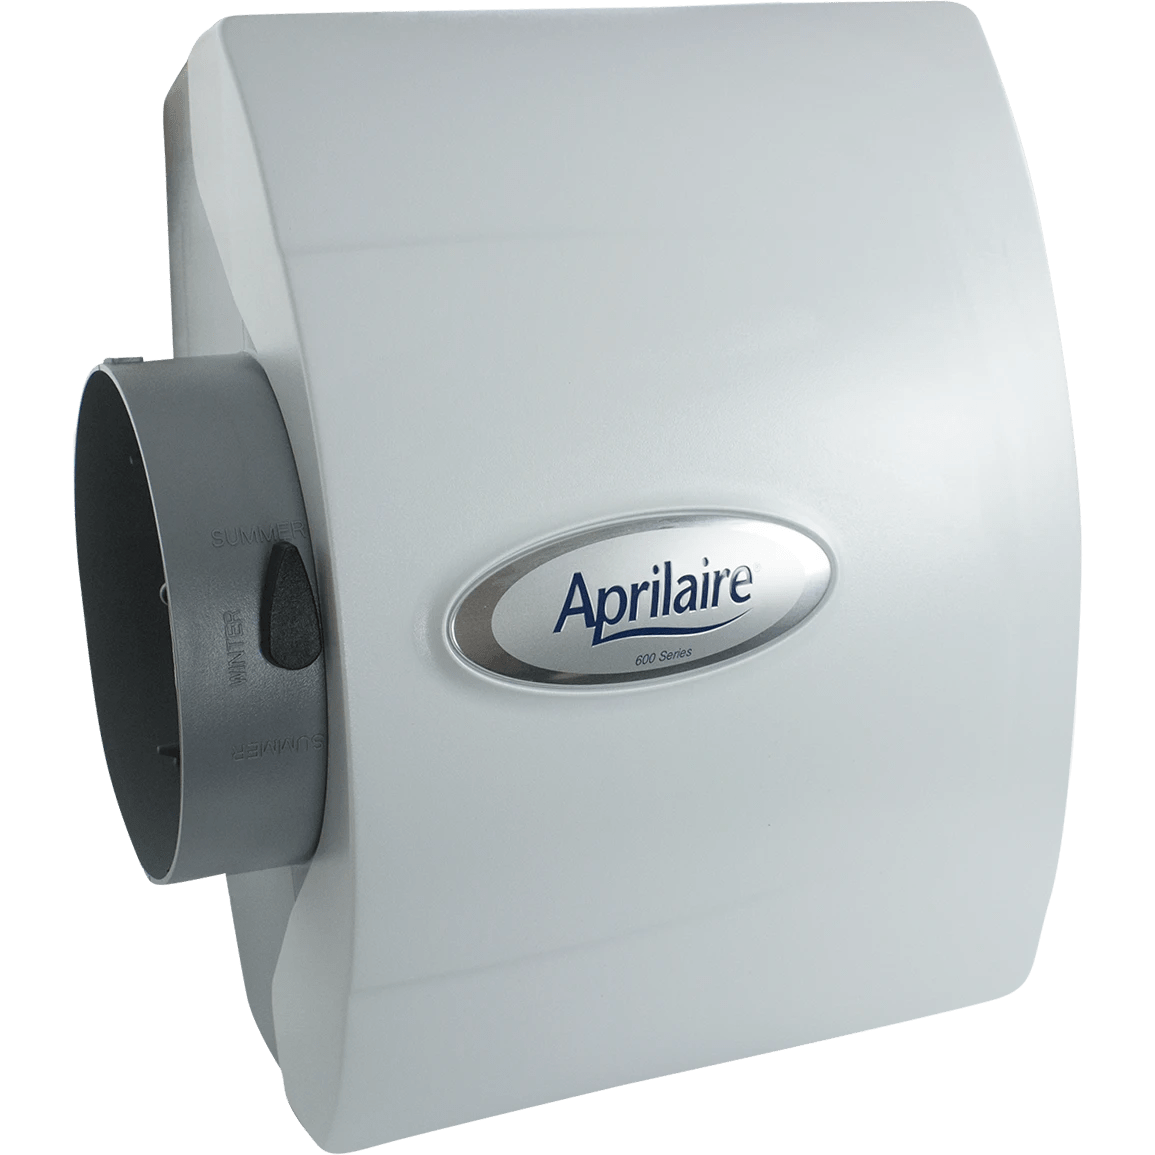 hight resolution of aprilaire model 600 large bypass humidifiers